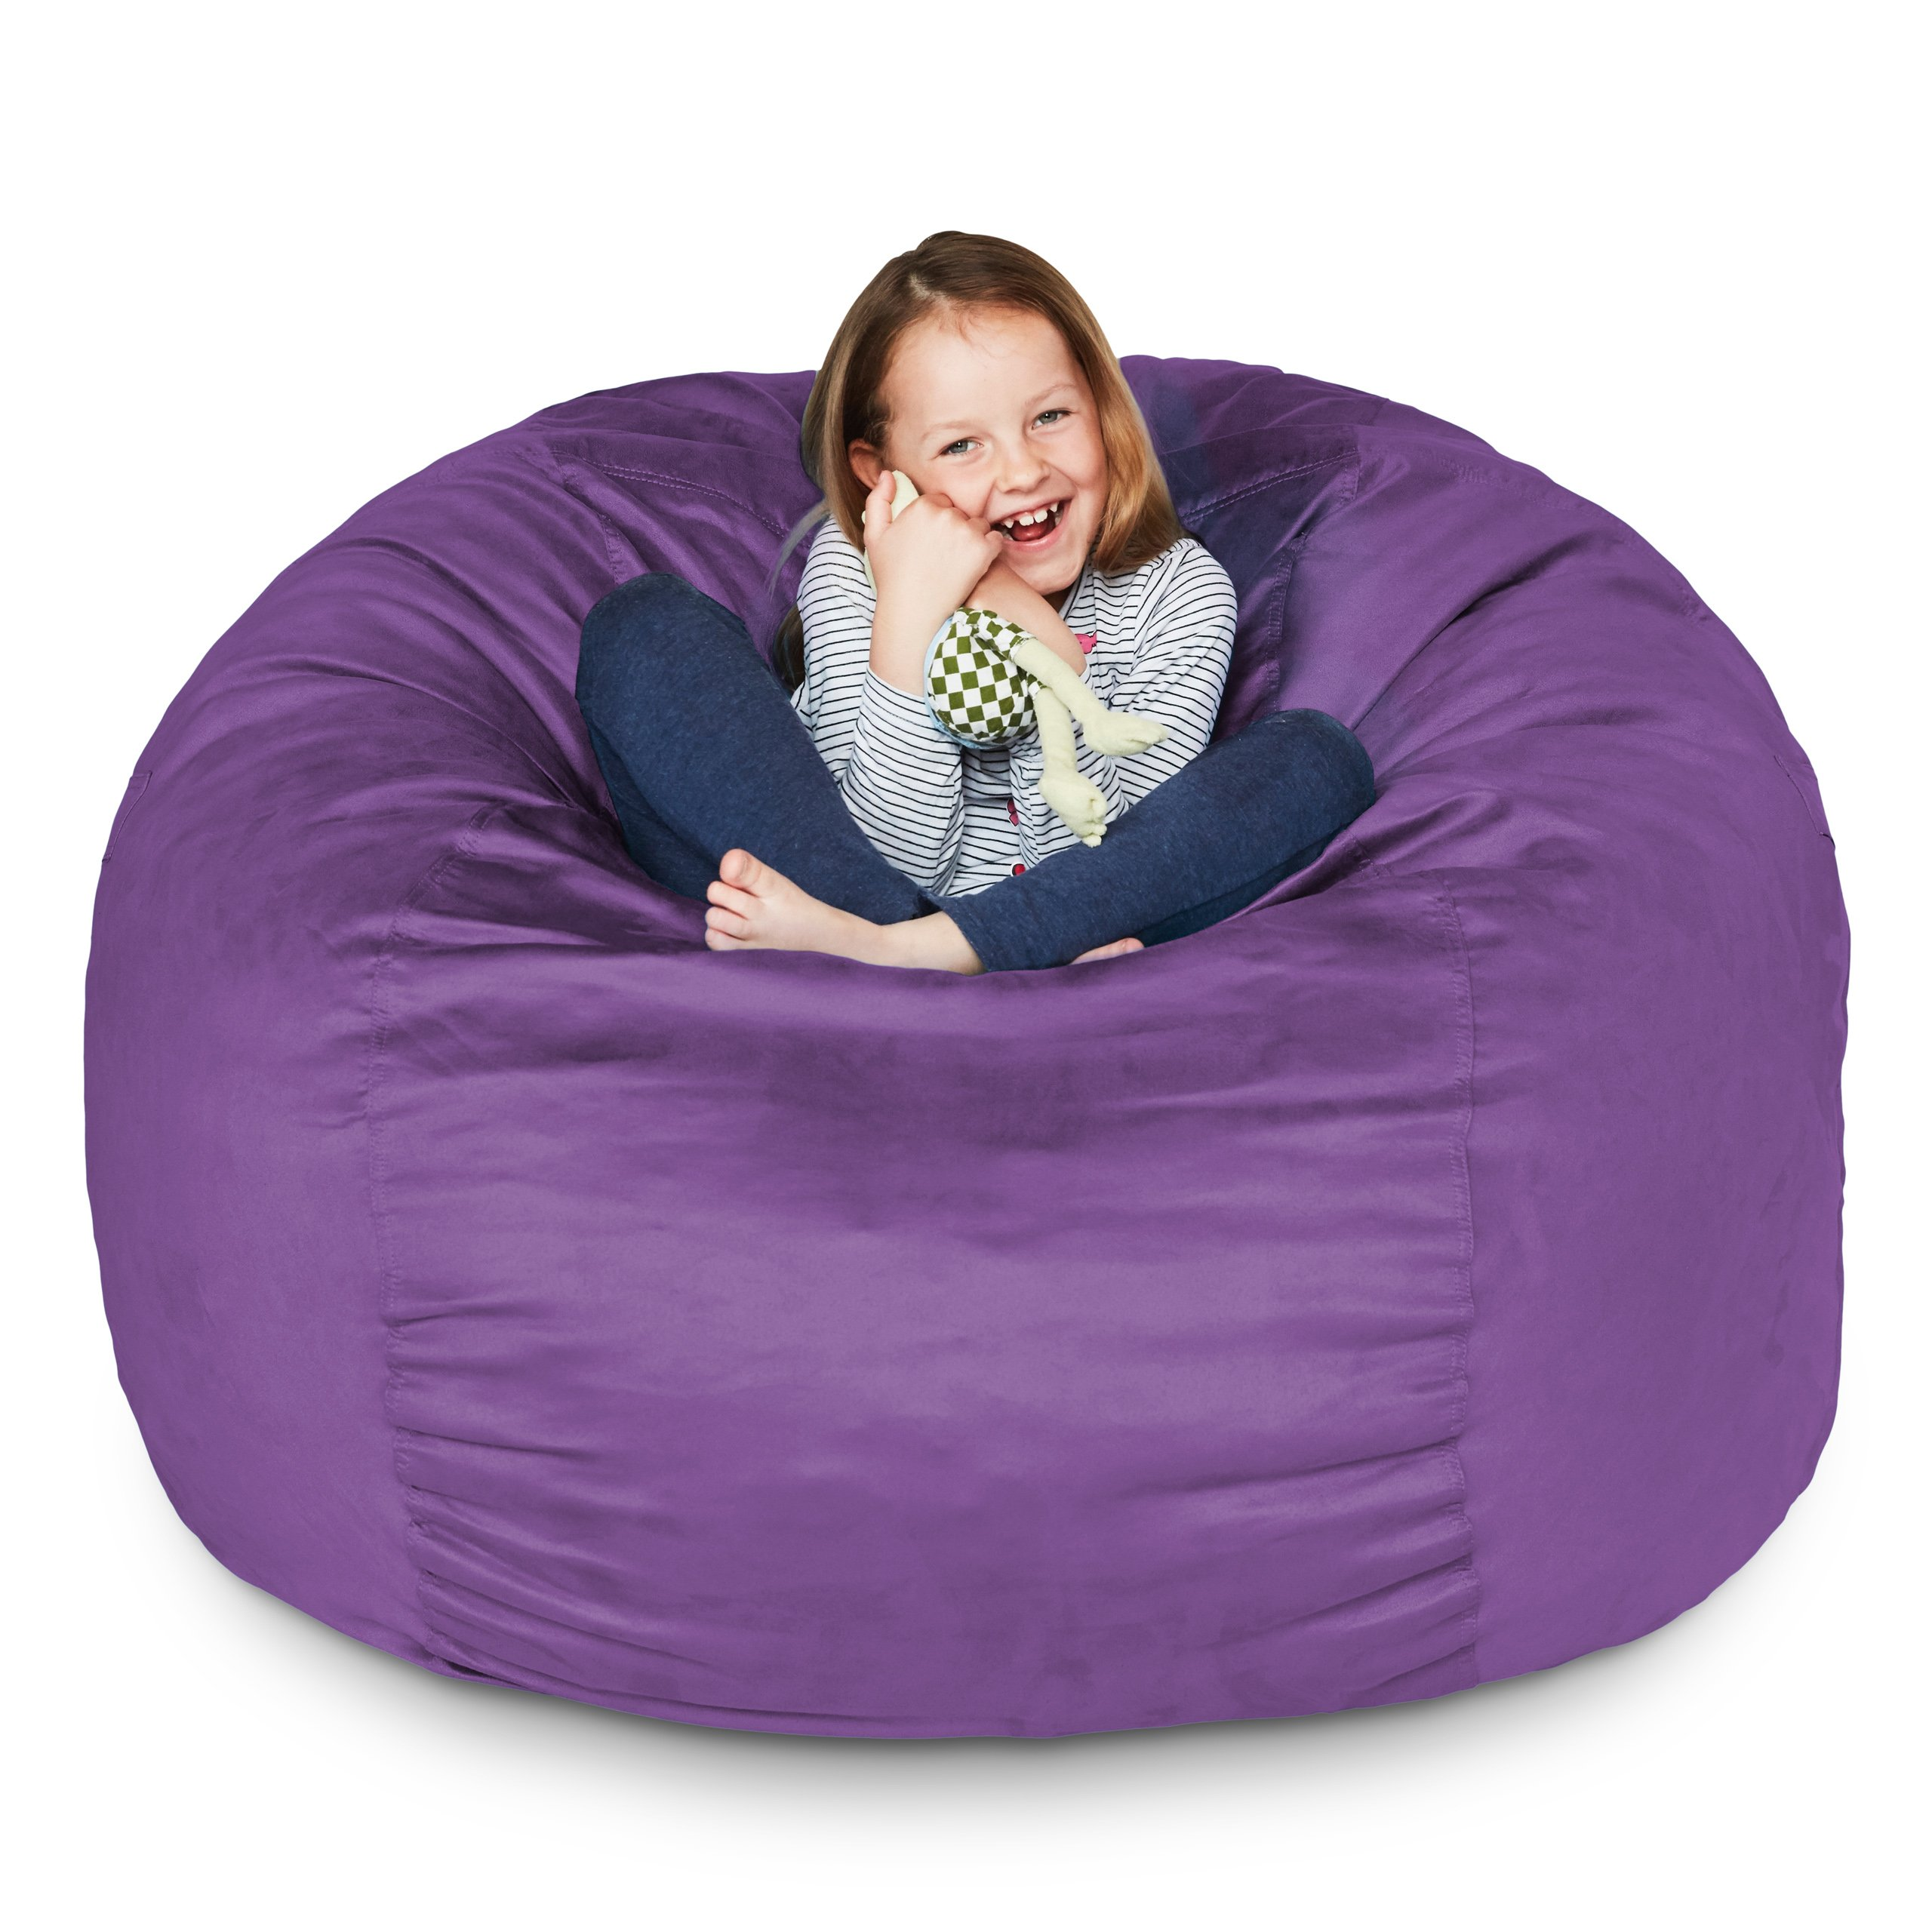 Lumaland Luxury 3-Foot Bean Bag Chair with Microsuede Cover Purple, Machine Washable Big Size Sofa and Giant Lounger Furniture for Kids, Teens and Adults